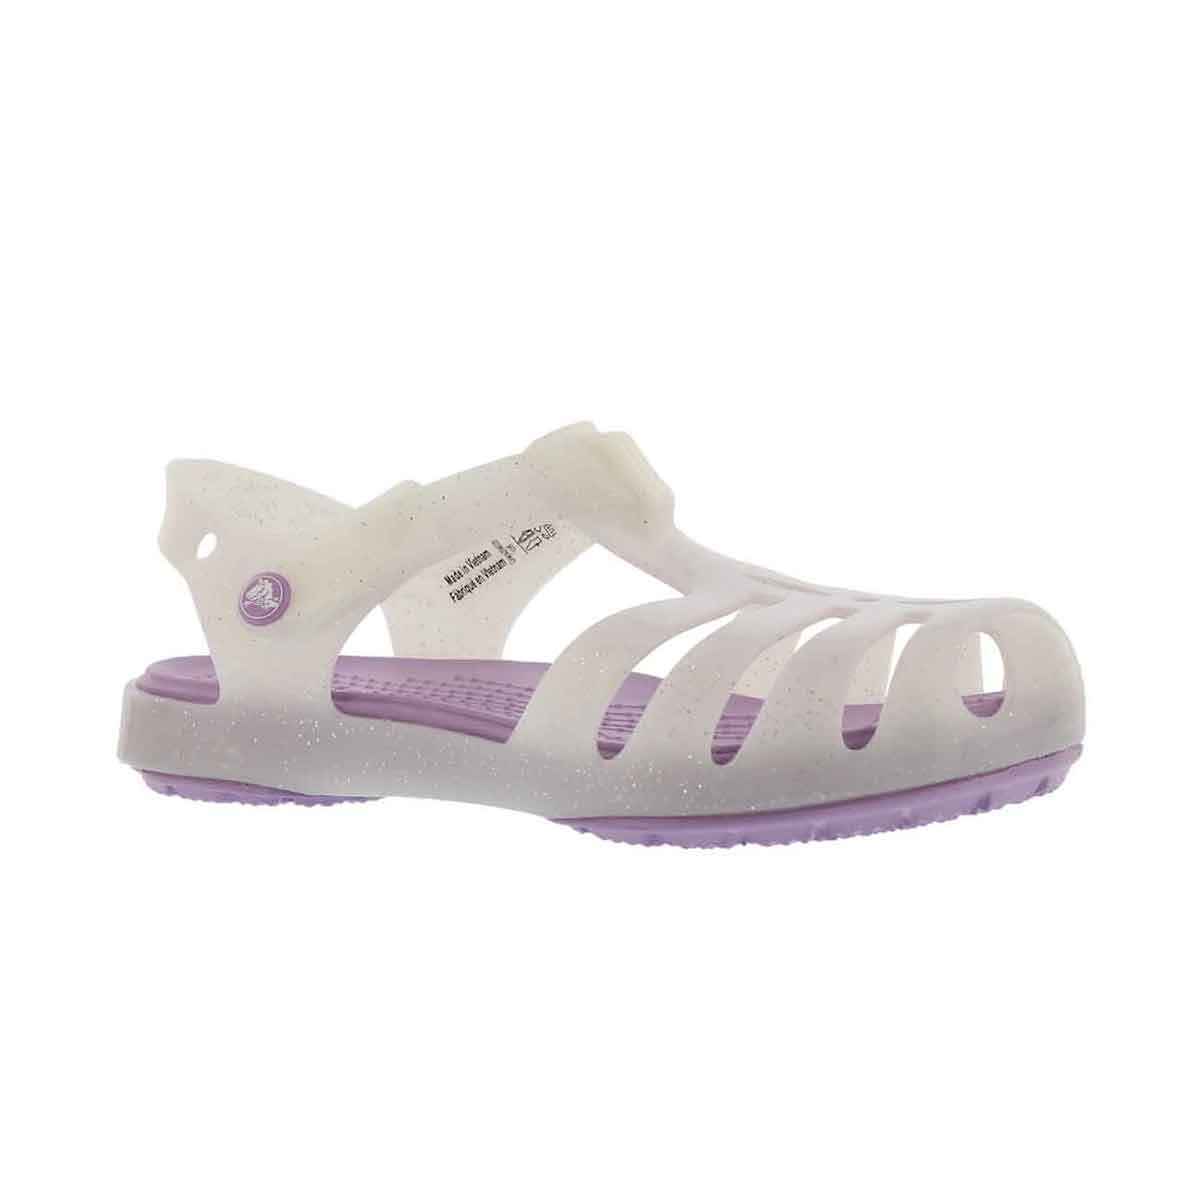 Girls' ISABELLA white casual sandals